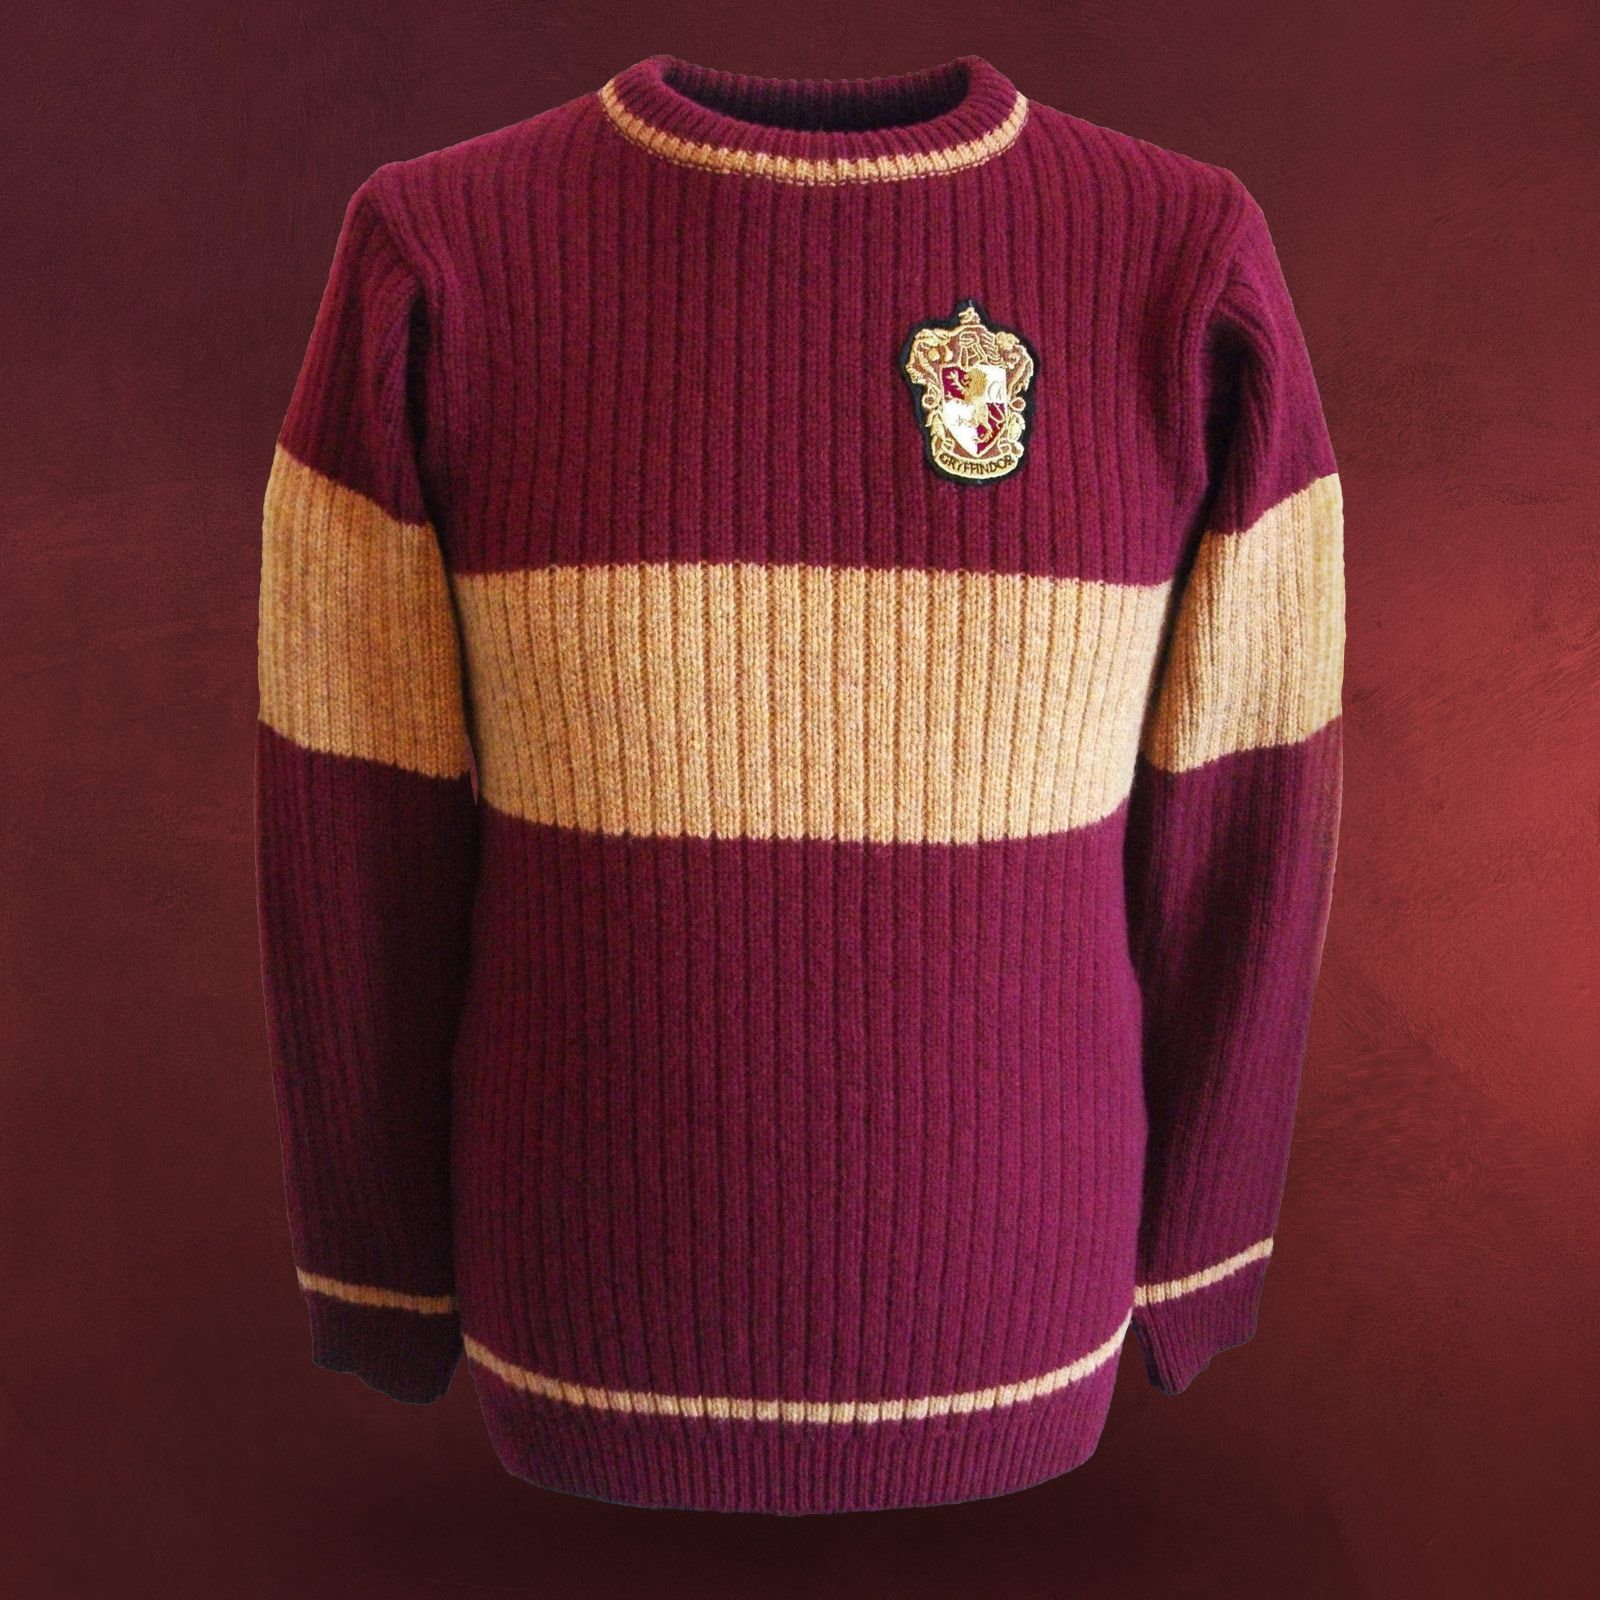 Harry Potter - Quidditch Gryffindor Sweater   getting dressed up ... 564ad92536d